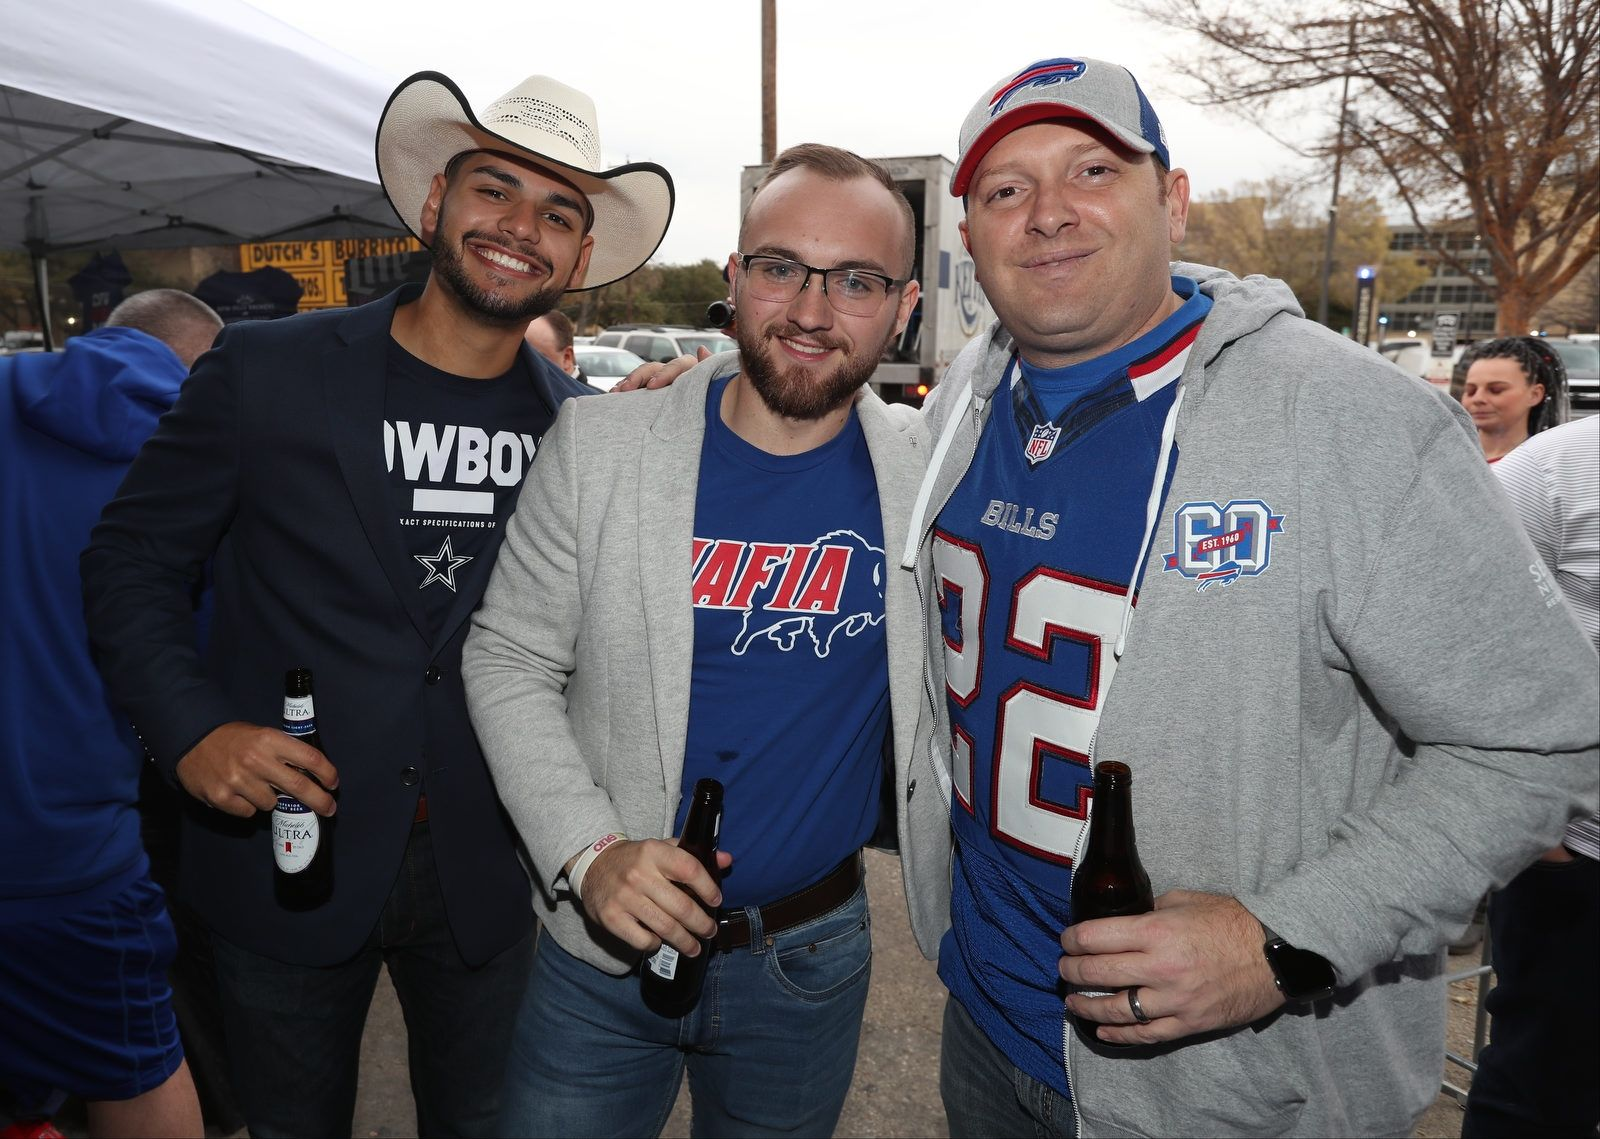 Over 700 Buffalo Bills fans packed the bar and patio area for the Dallas Backers party at Buffalo Bros in Fort Worth, Texas, on Wednesday, Nov. 27, 2019.